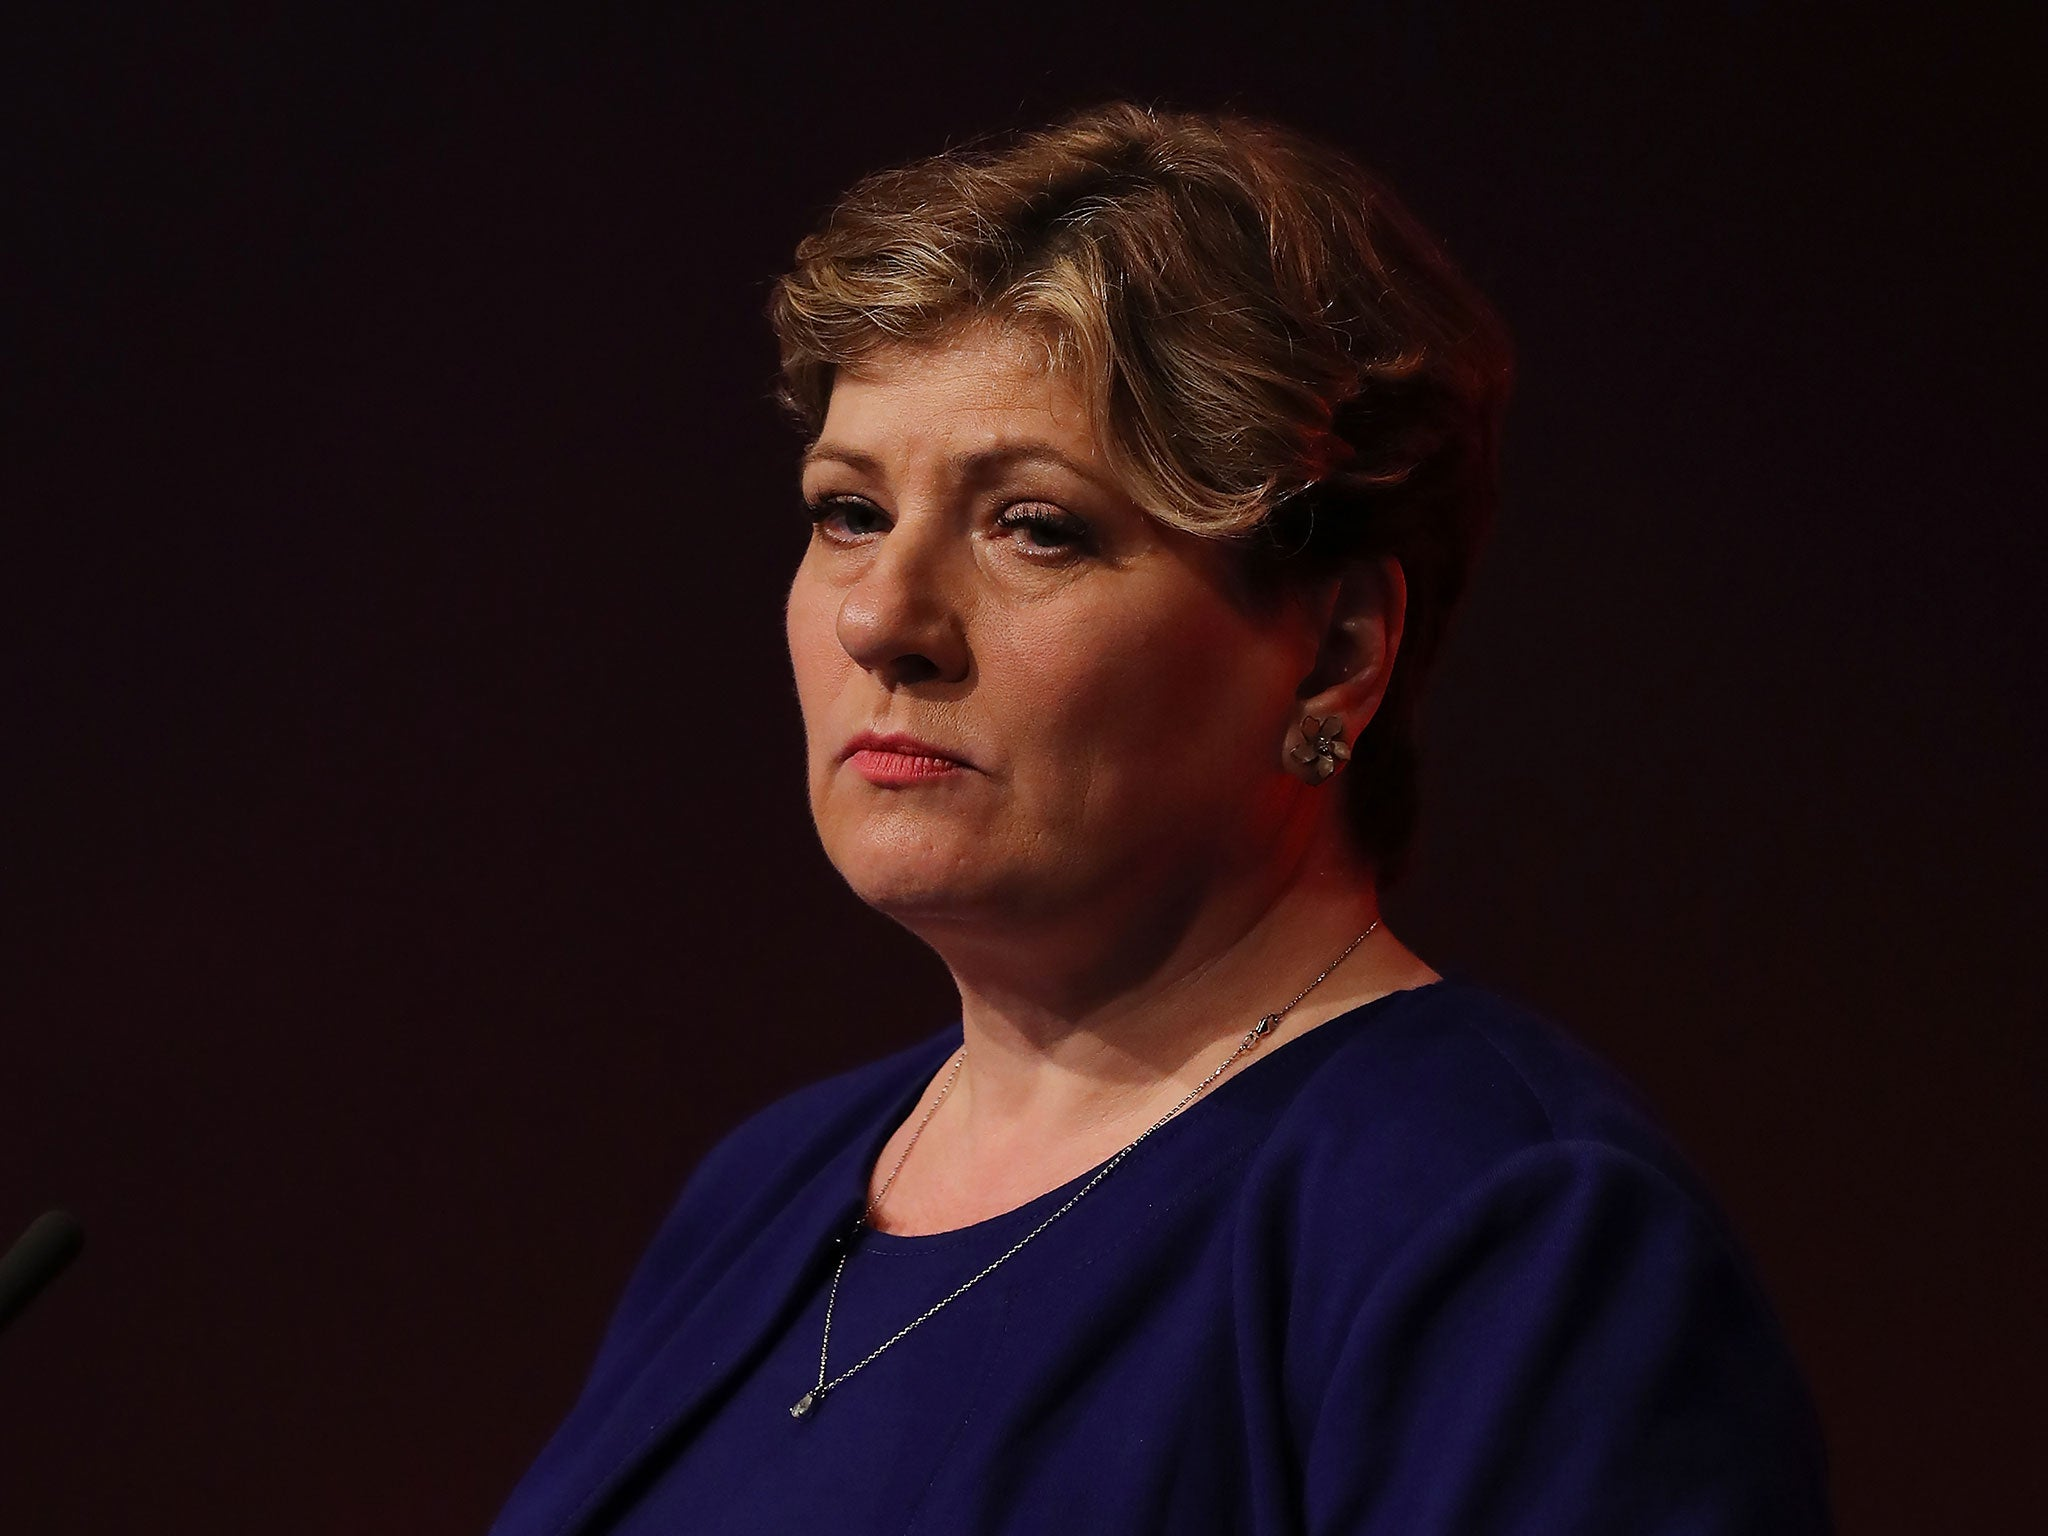 Support for Syria's Assad has been 'underestimated', says Emily Thornberry